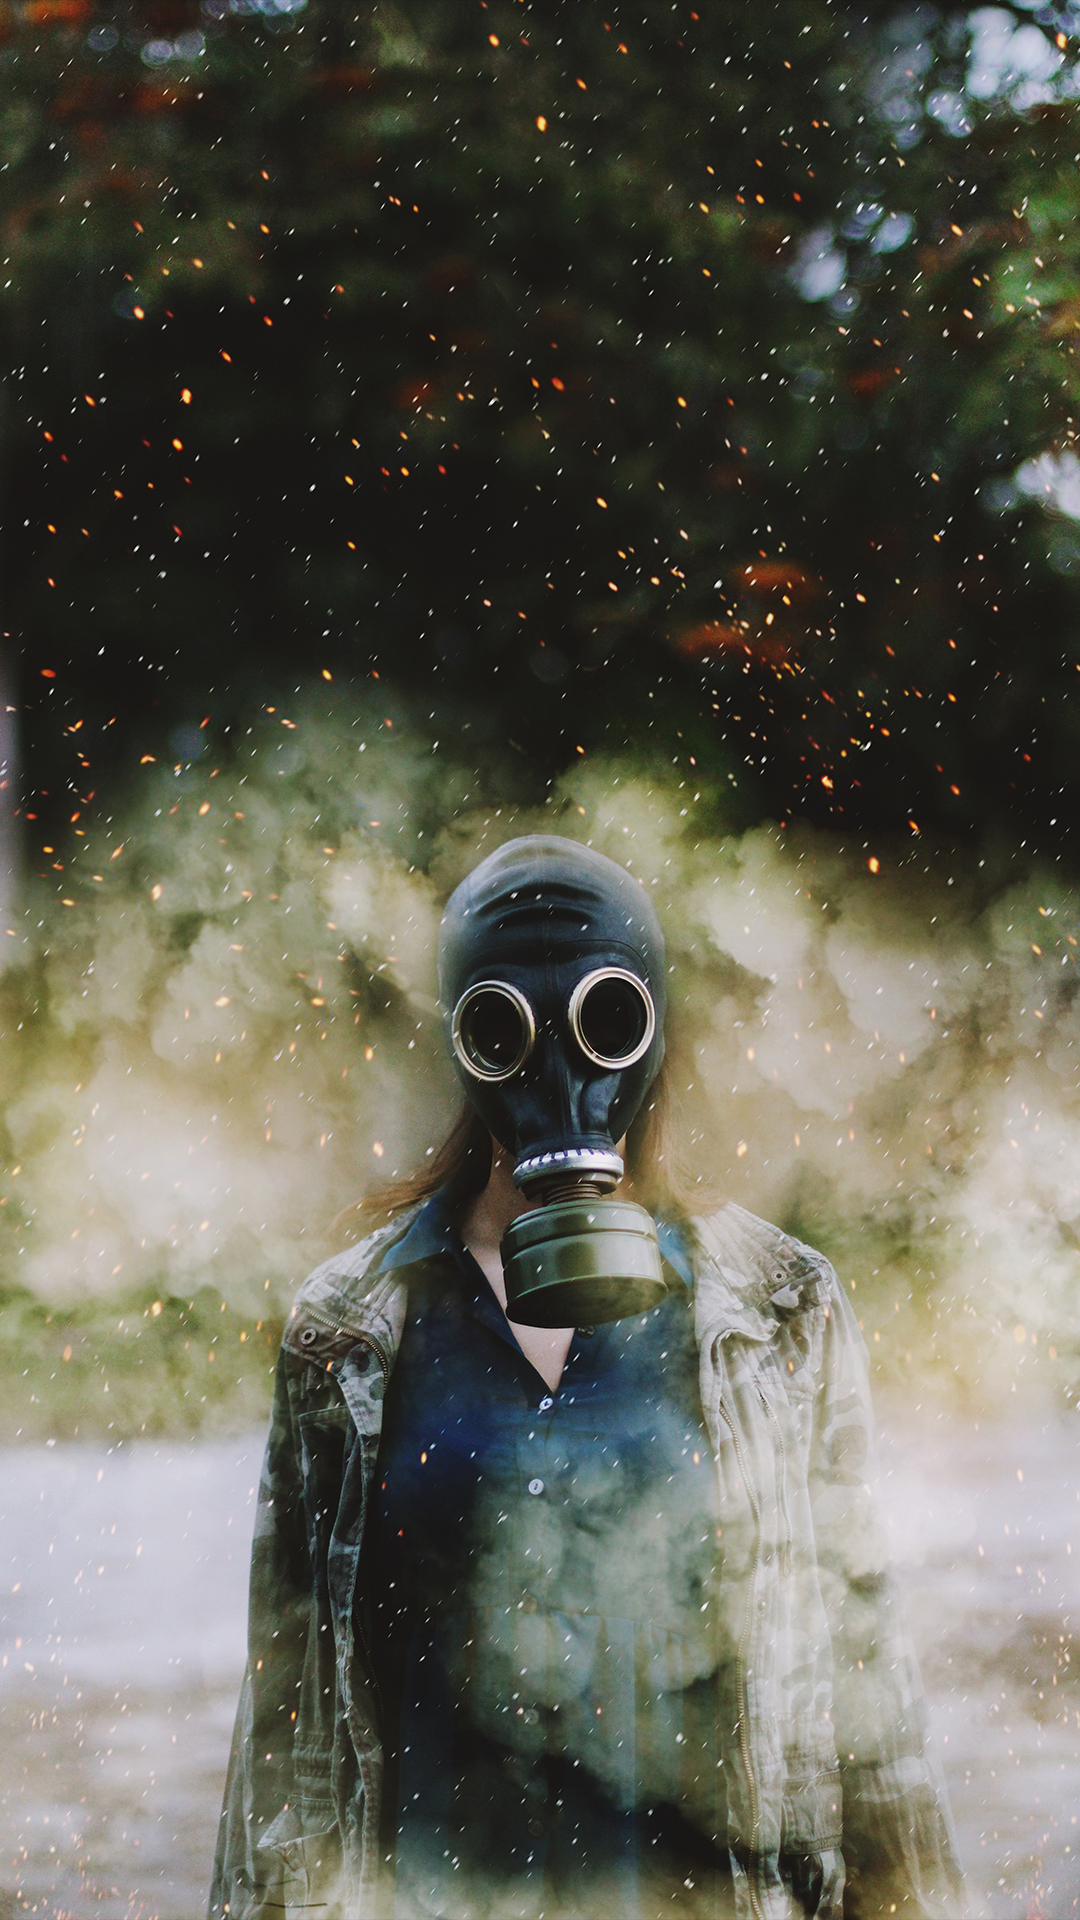 iPhone wallpaper abstract portrait gas mask macinmac